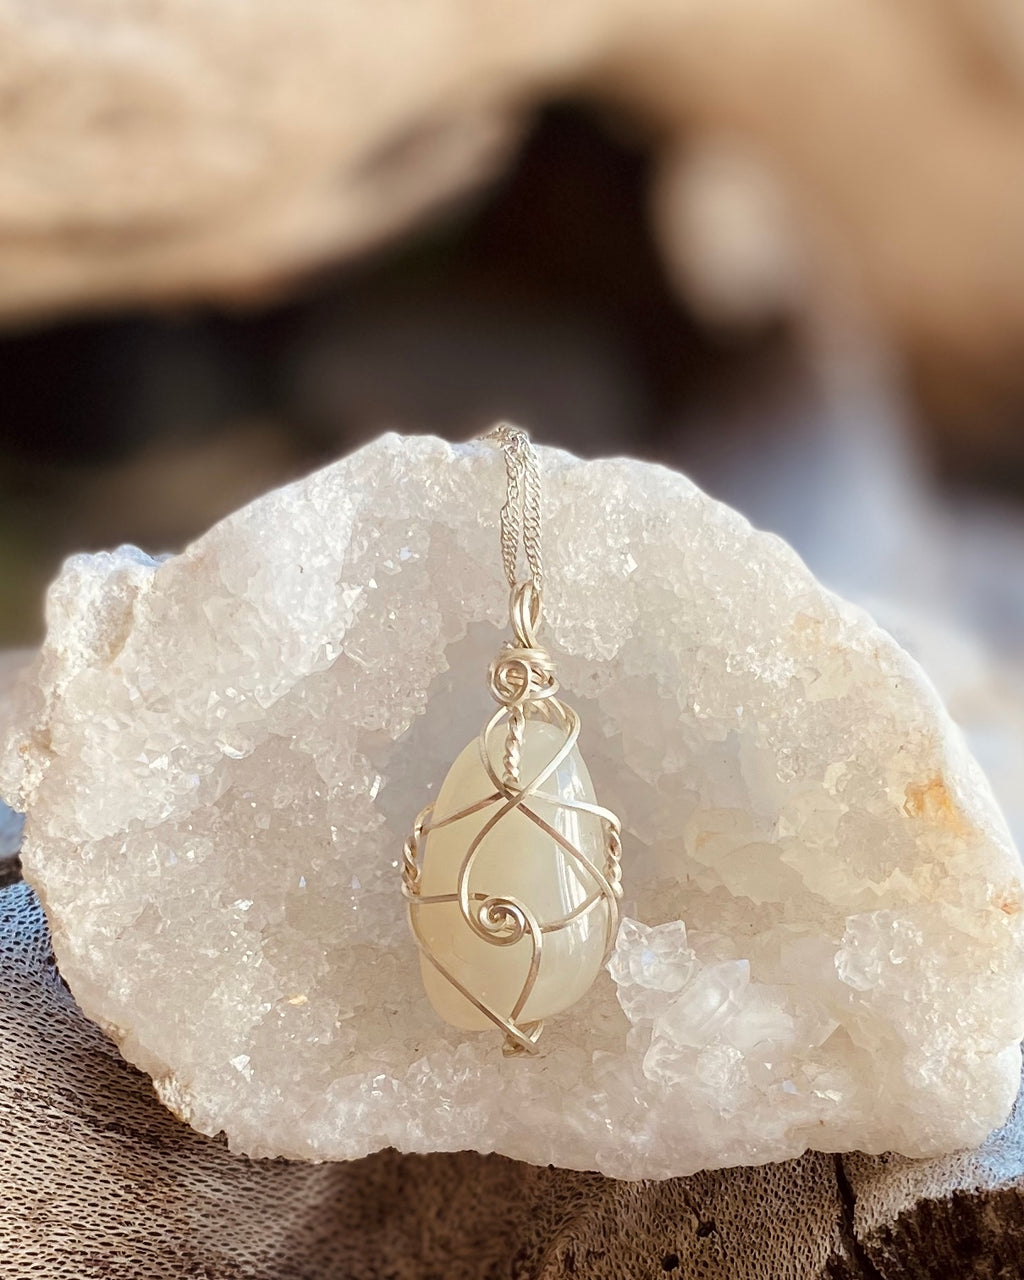 Artisan crafted natural Moonstone pendant necklace handmade in Byron Bay. Wrapped in eco friendly 925 sterling silver wire.